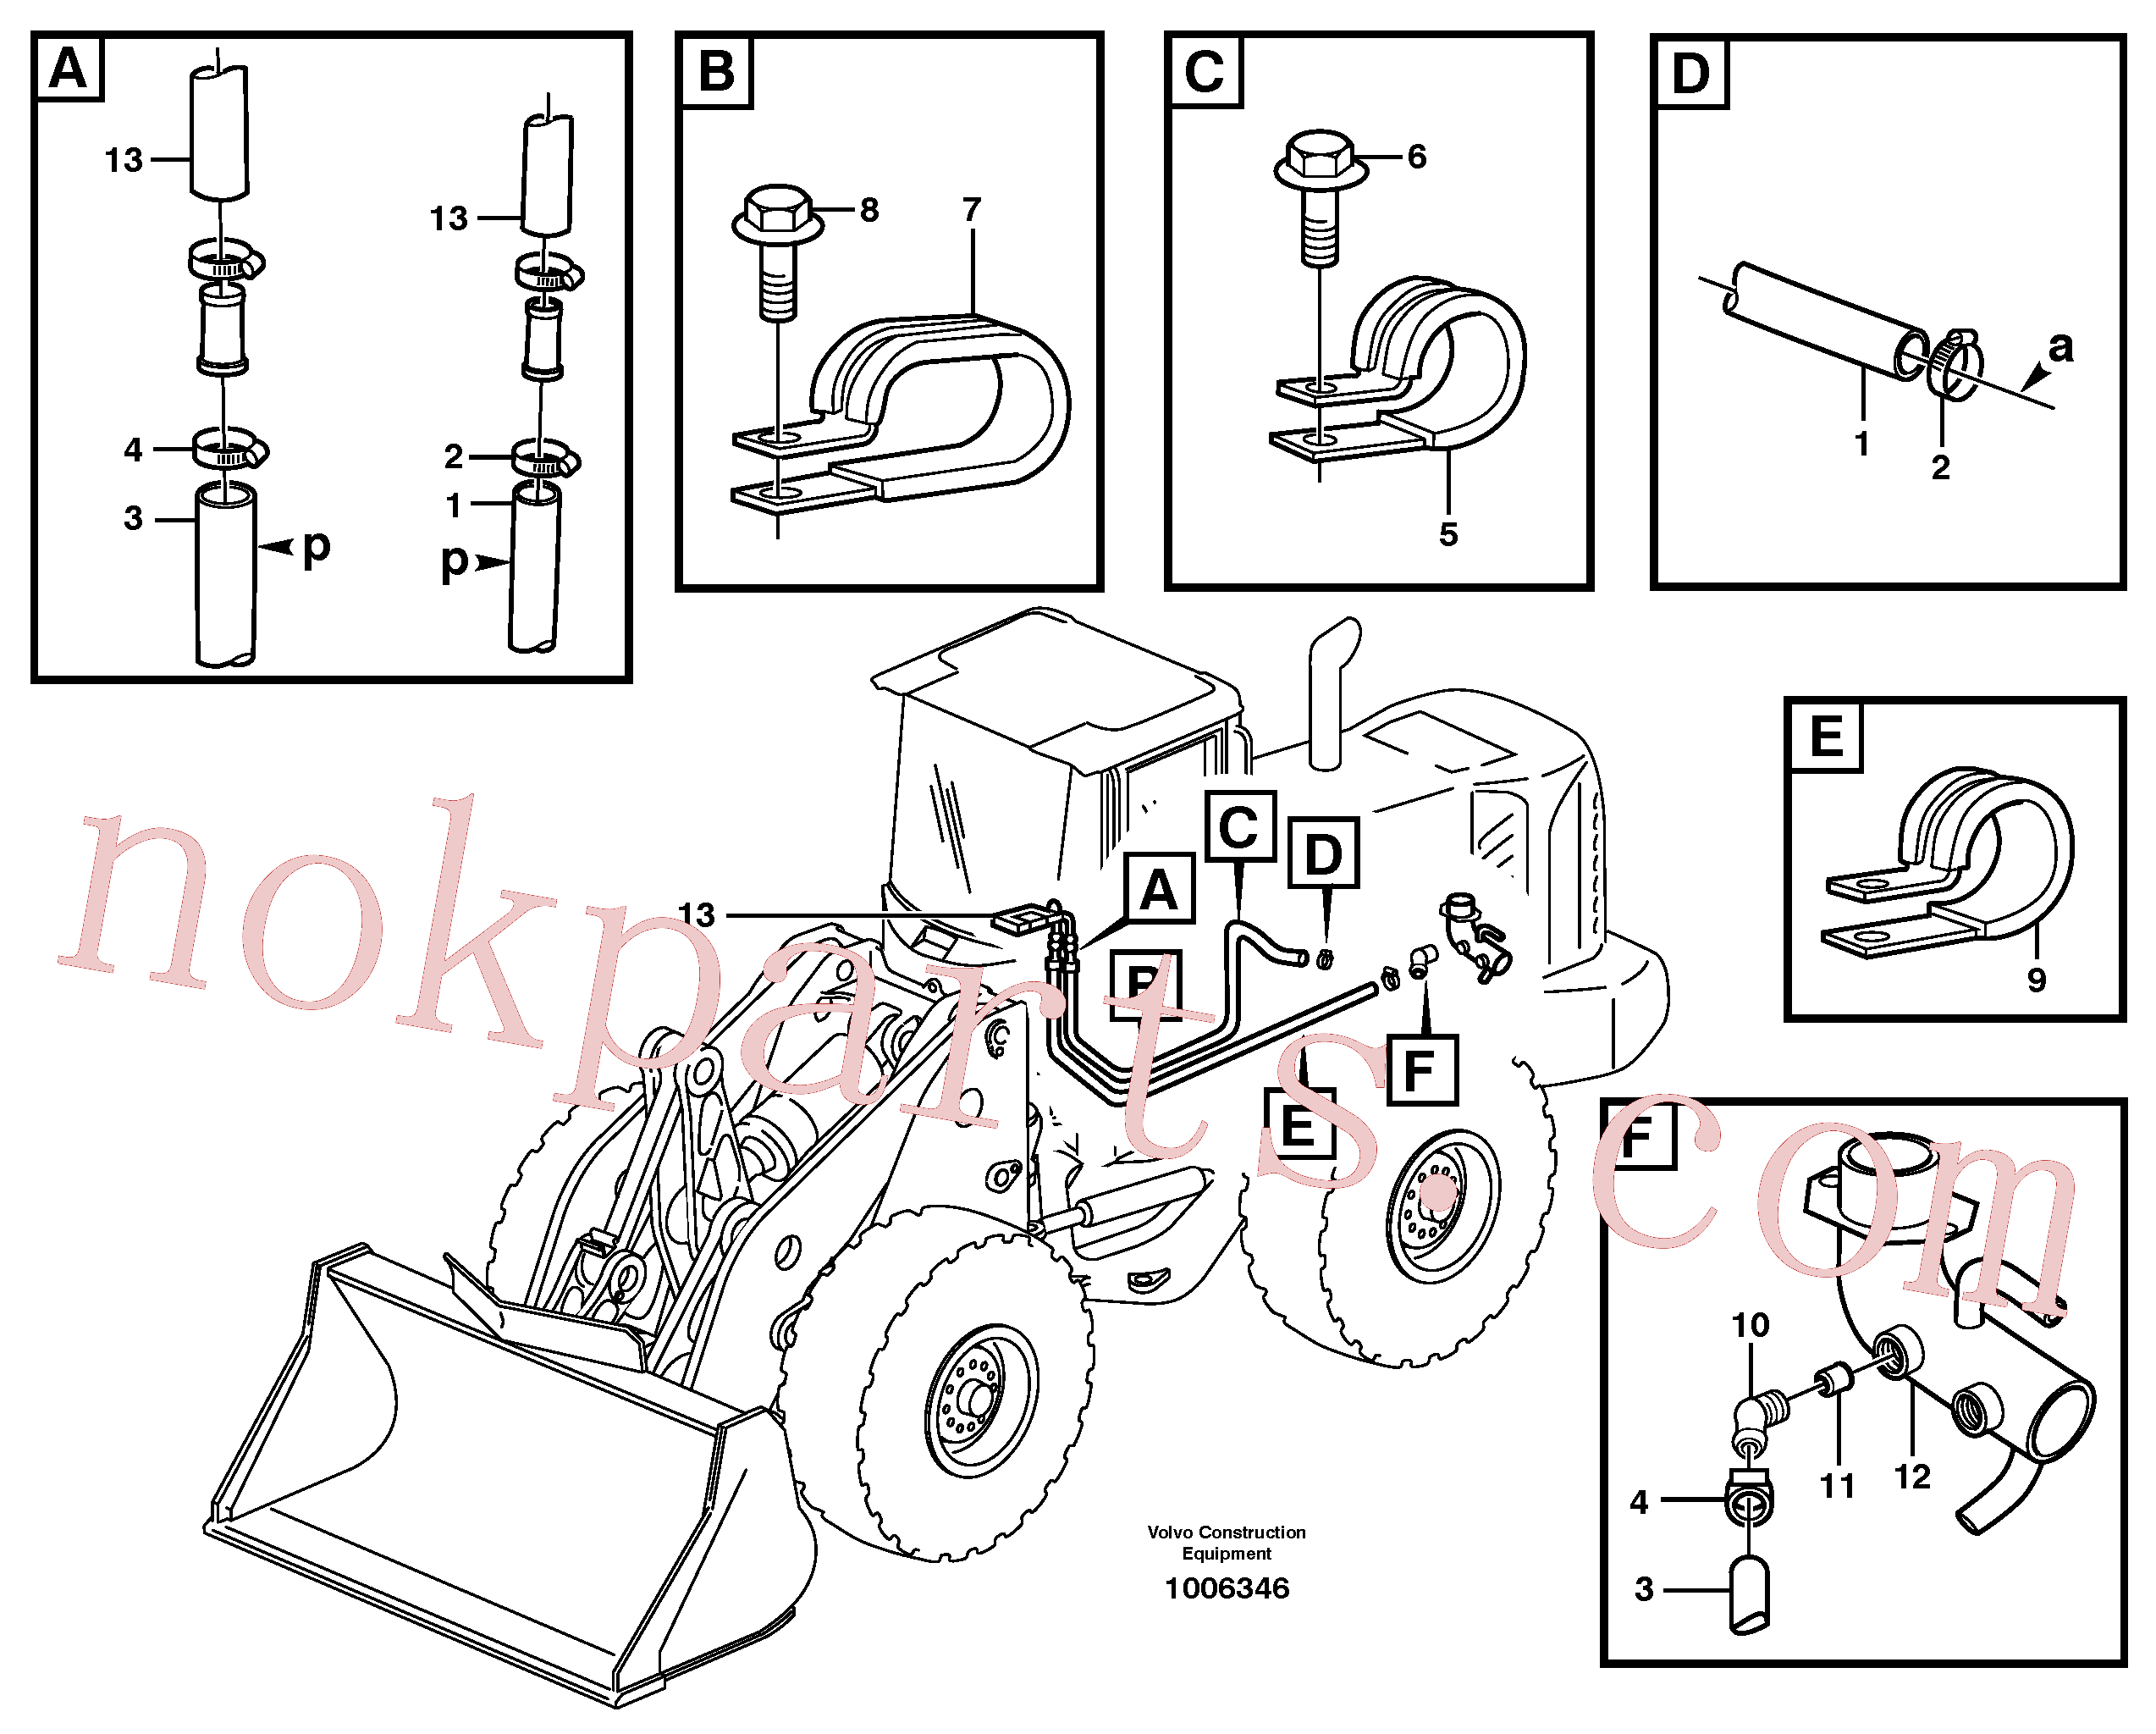 VOE13946441 for Volvo Heating system(1006346 assembly)